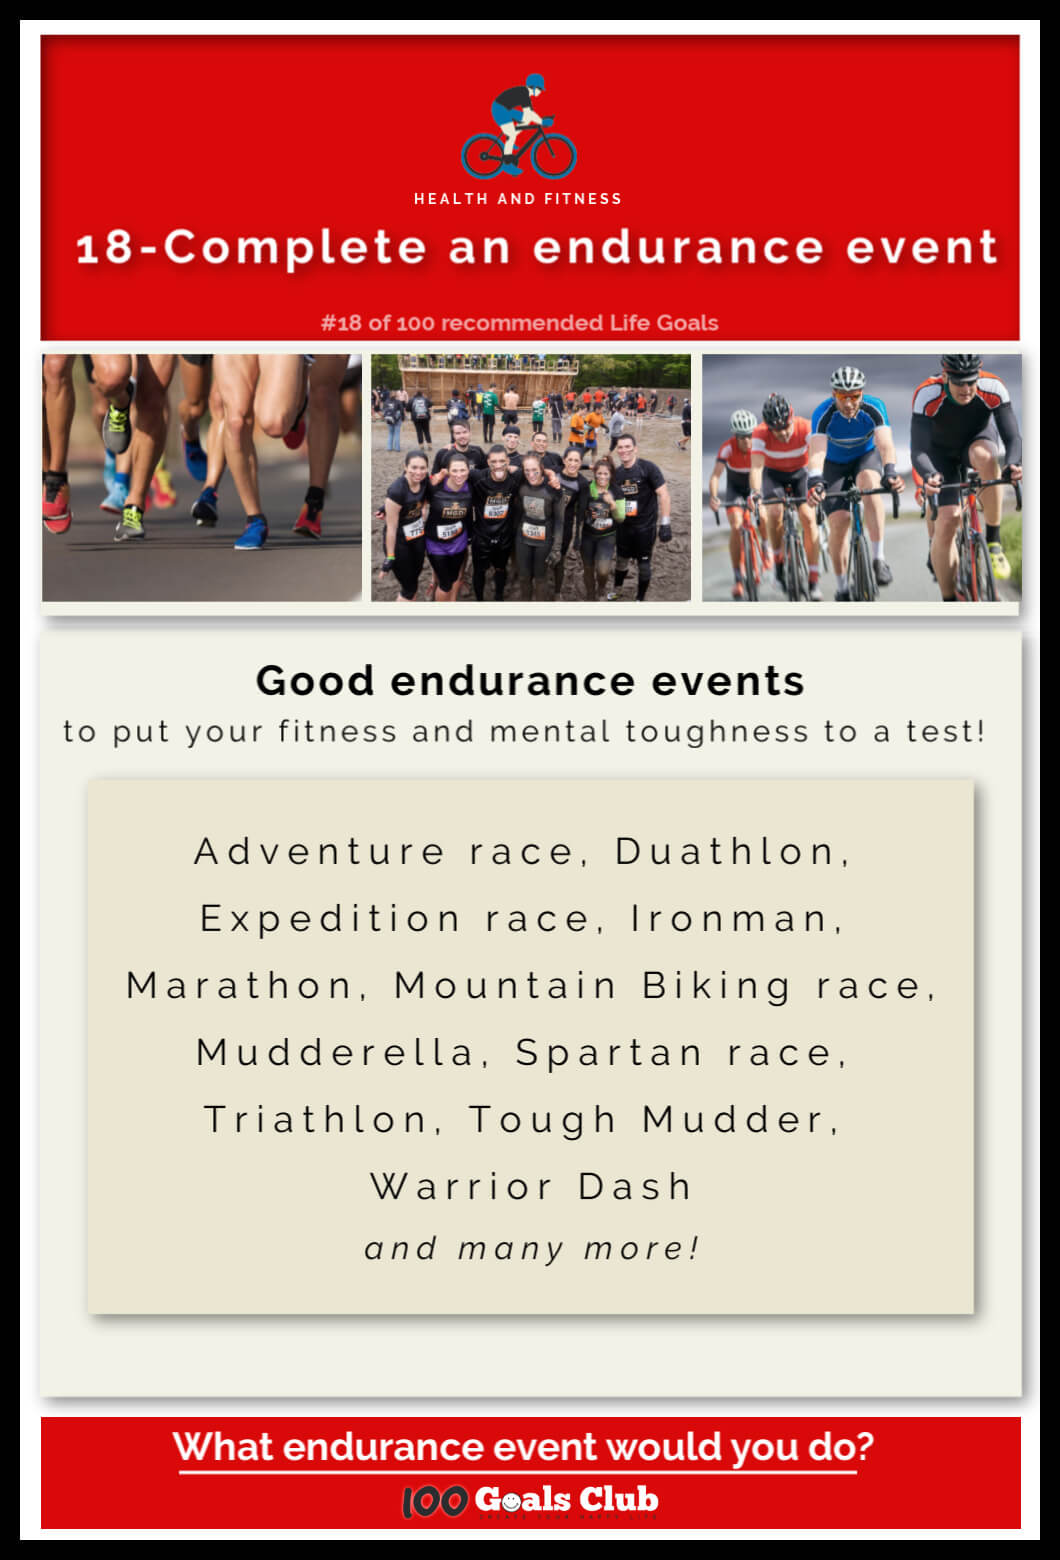 Endurance events